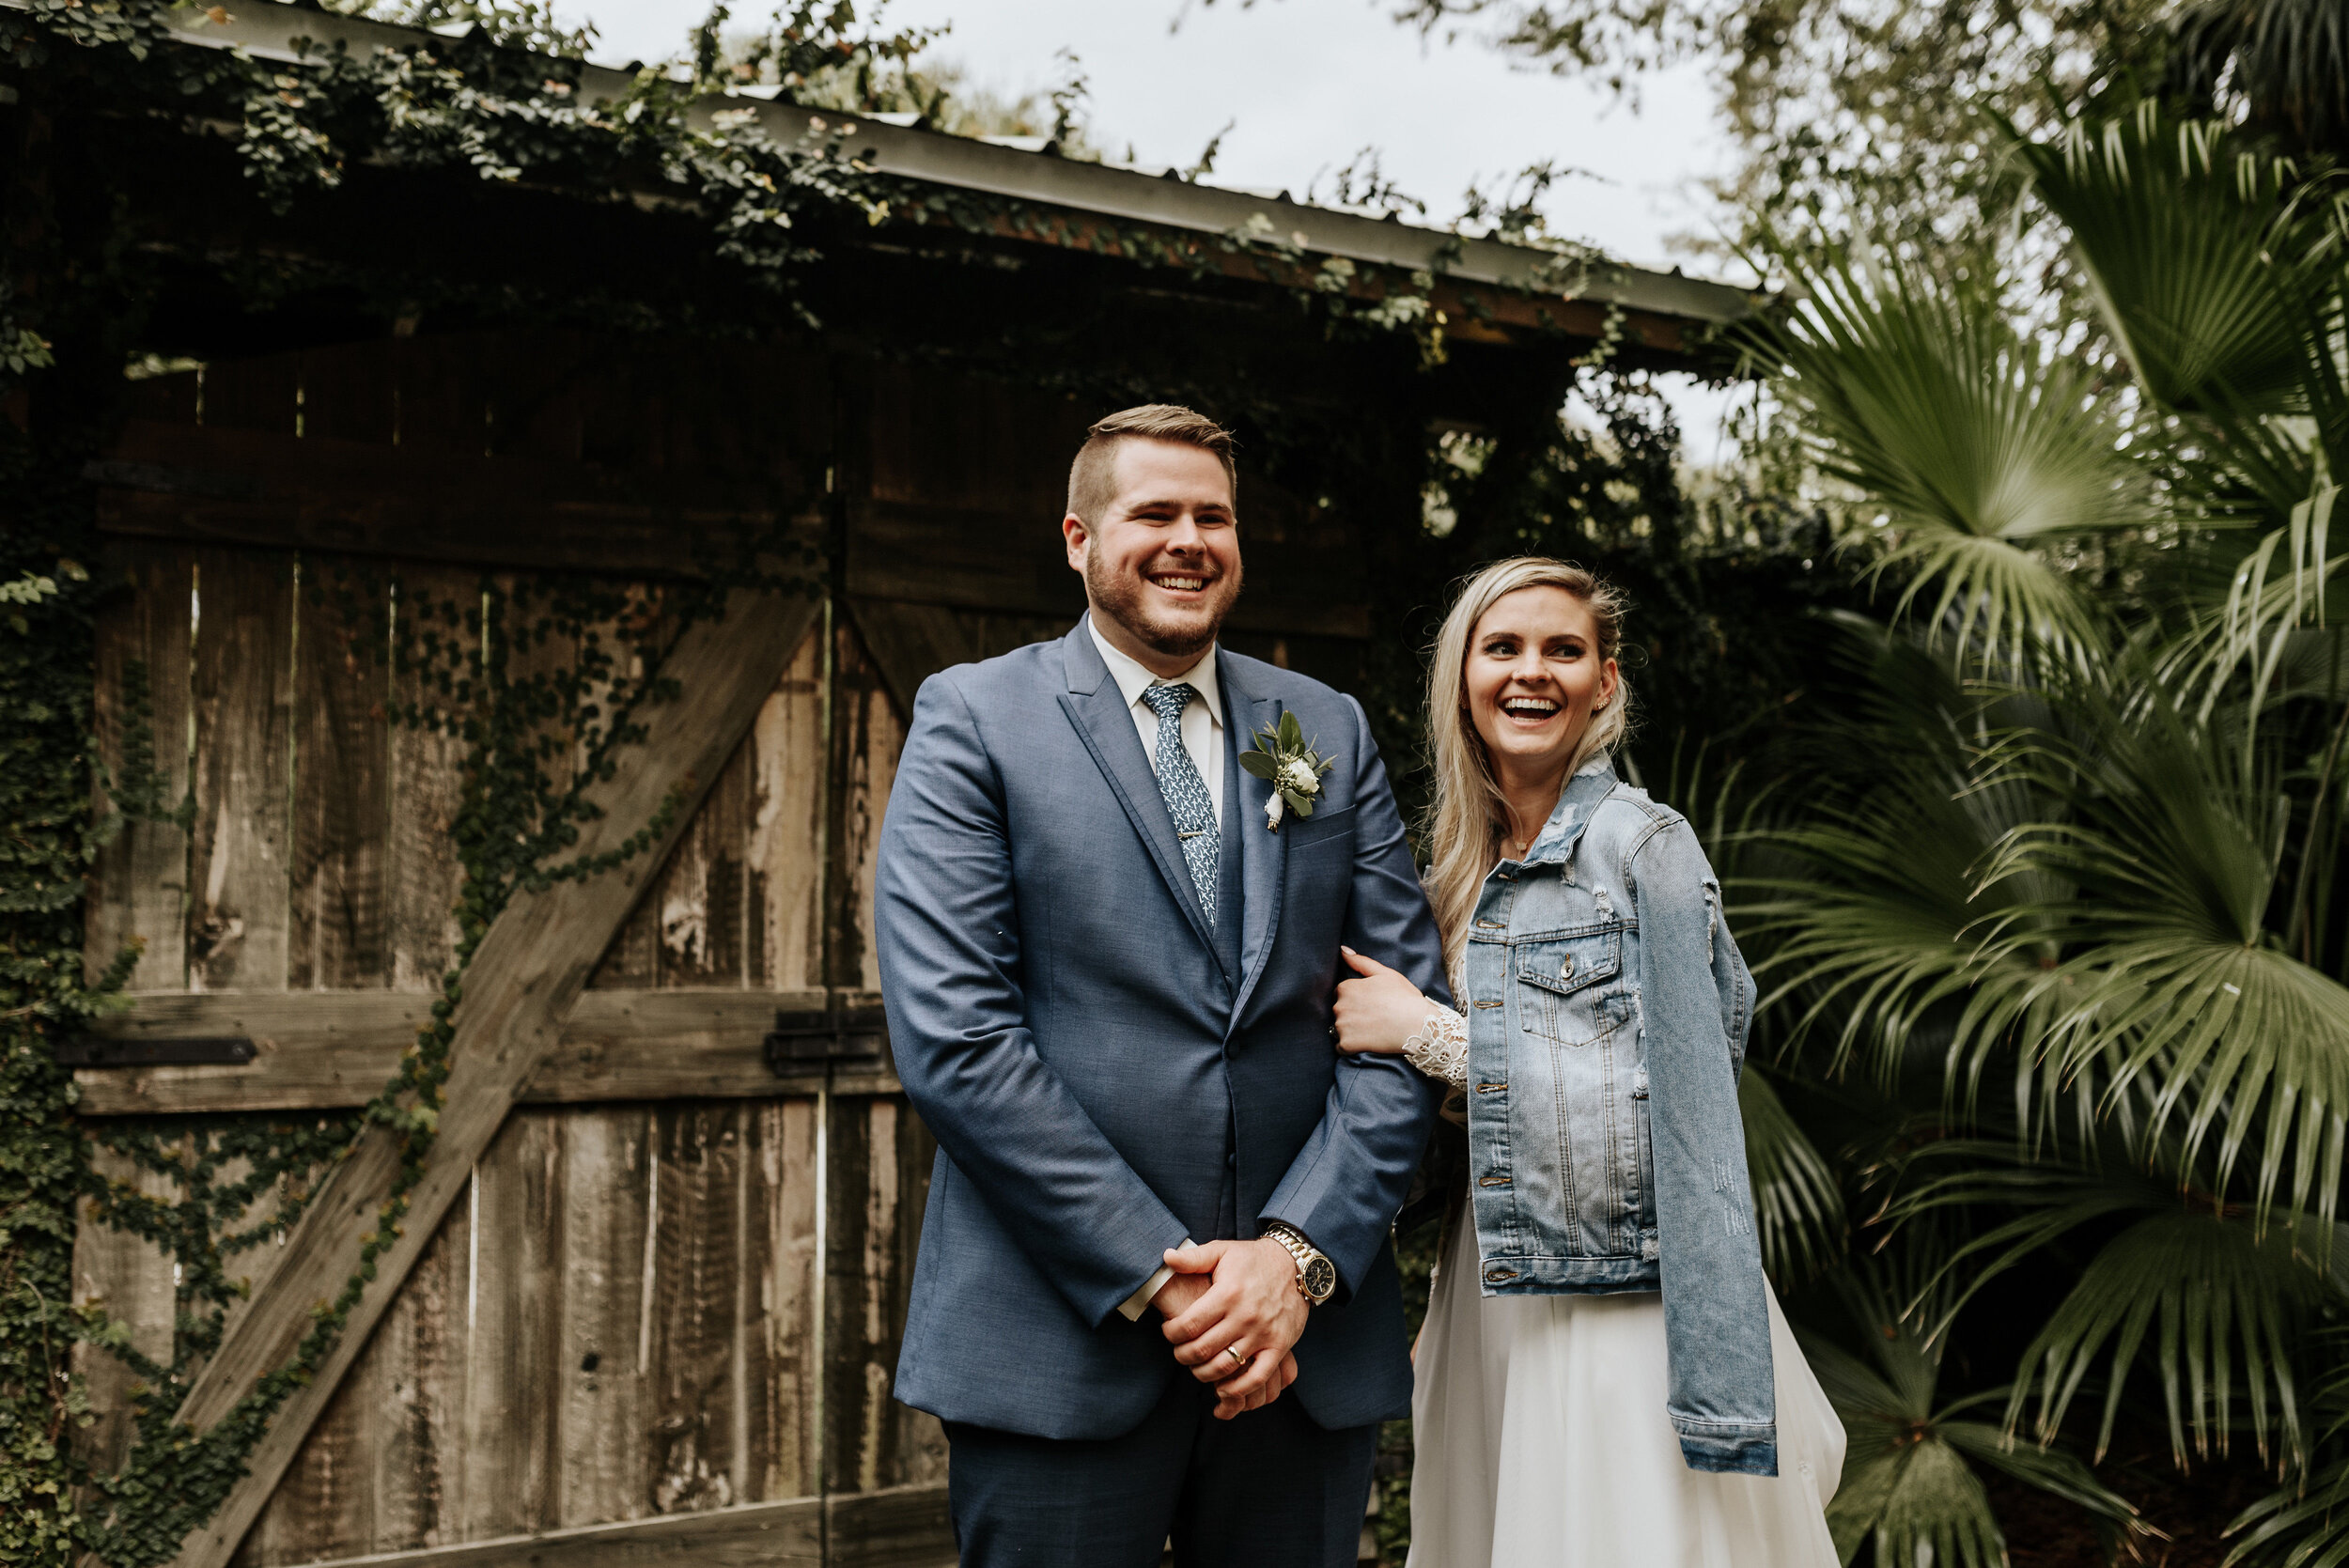 Mikenzi_Brad_Wedding_The_Delamater_House_New_Smyrna_Beach_Florida_Photography_by_V_0807.jpg